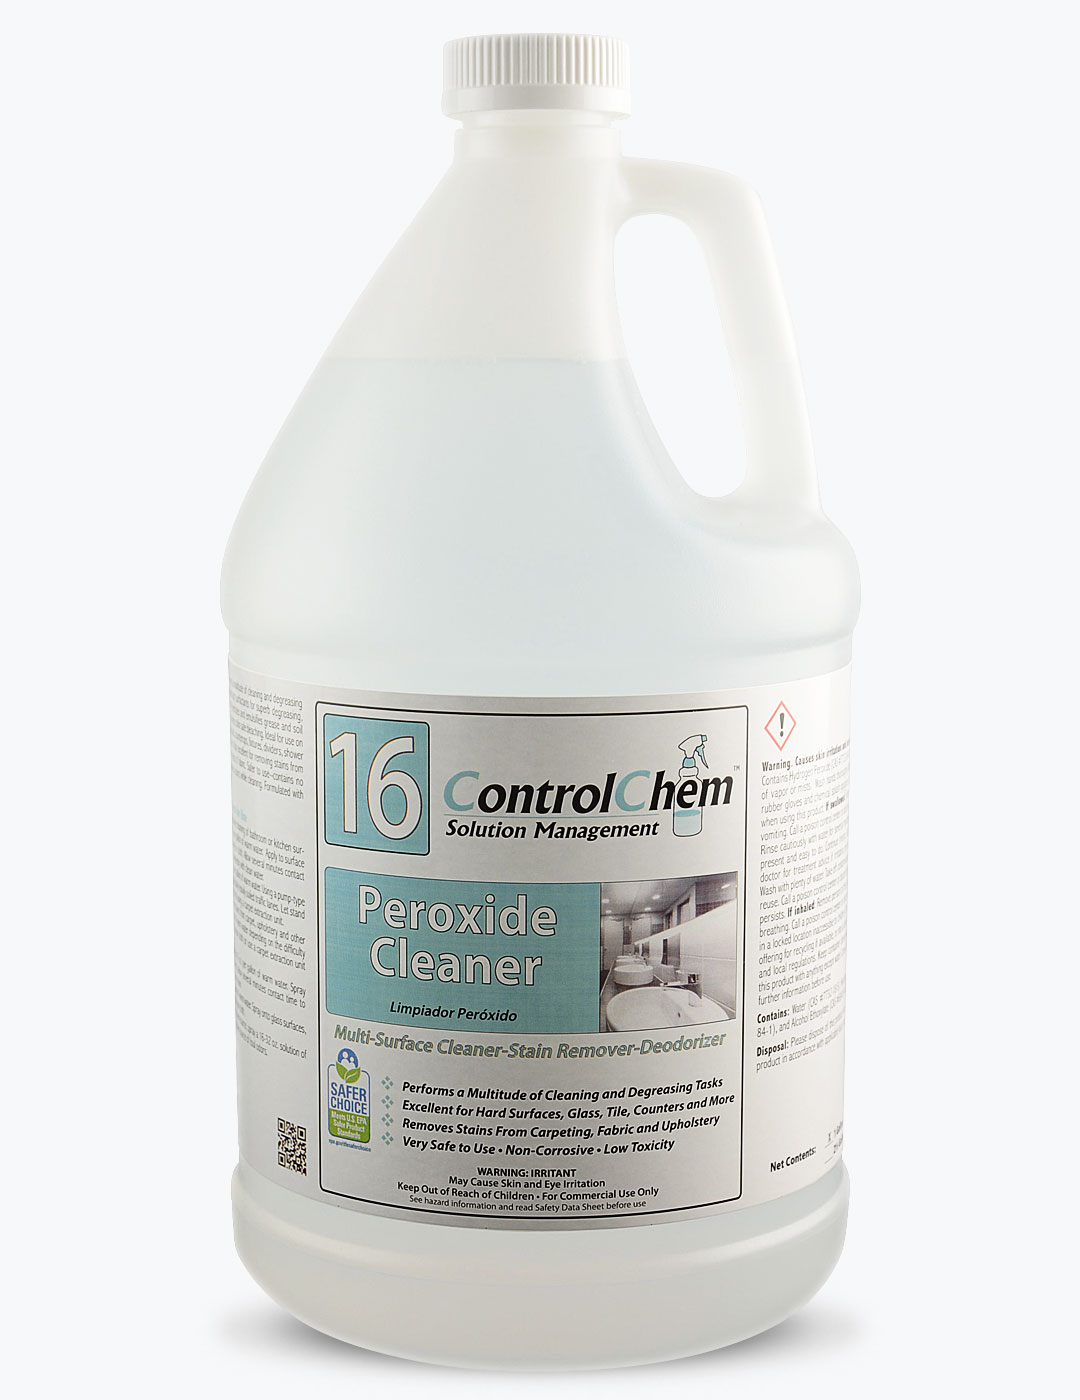 ControlChem #16 Peroxide Cleaner